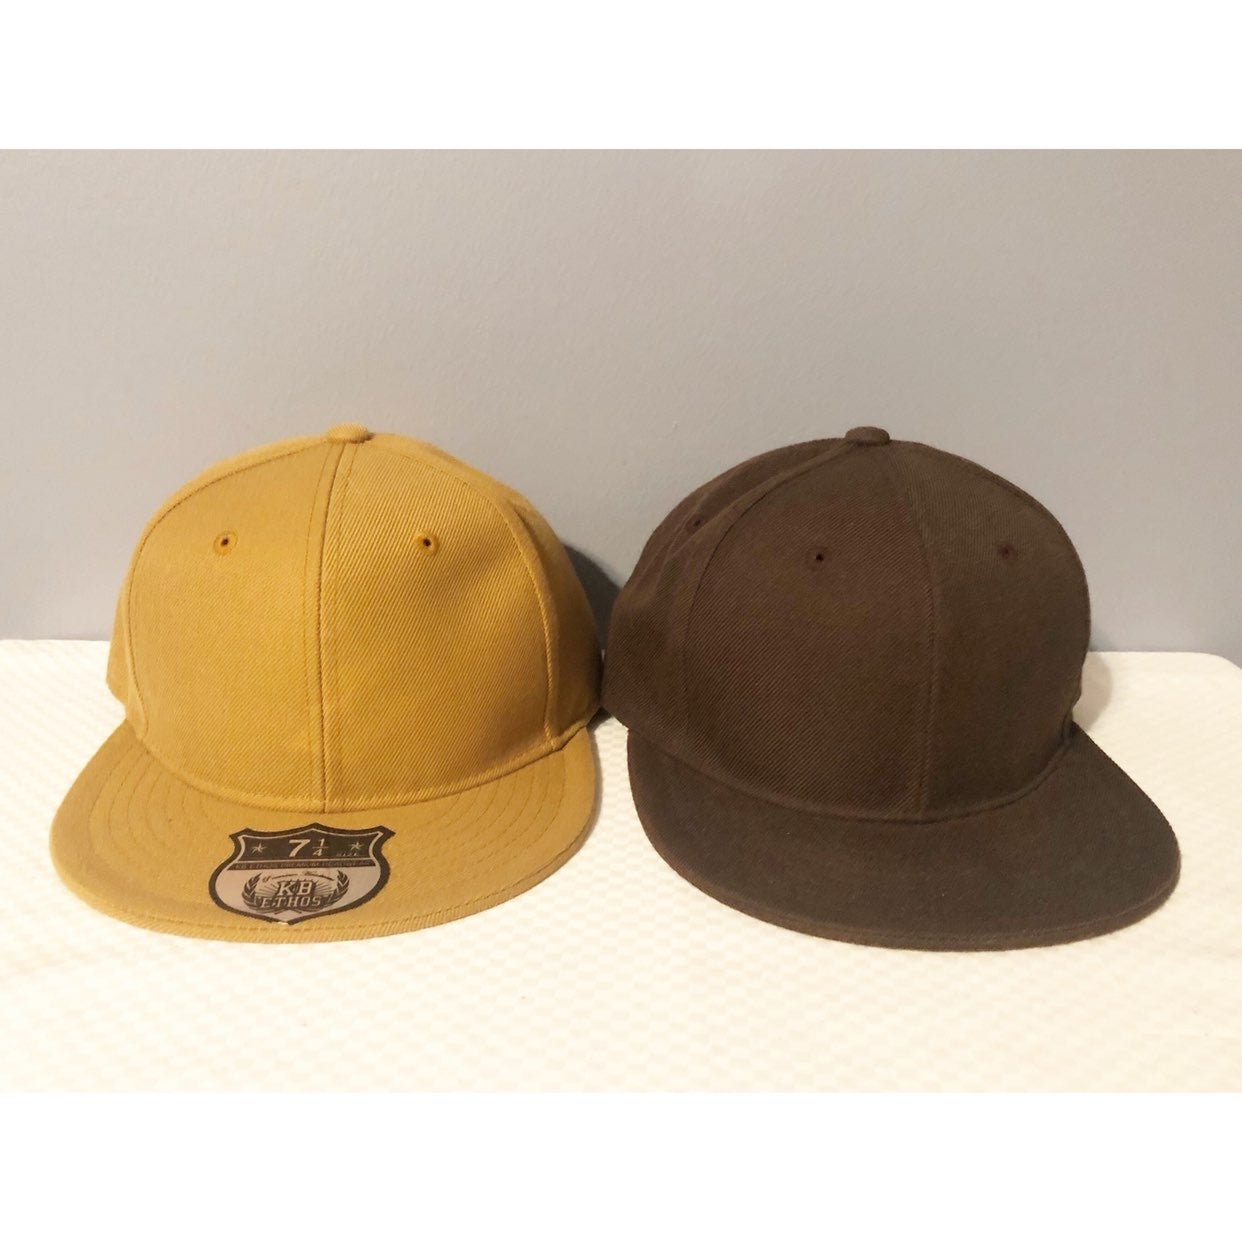 2 Fitted Caps